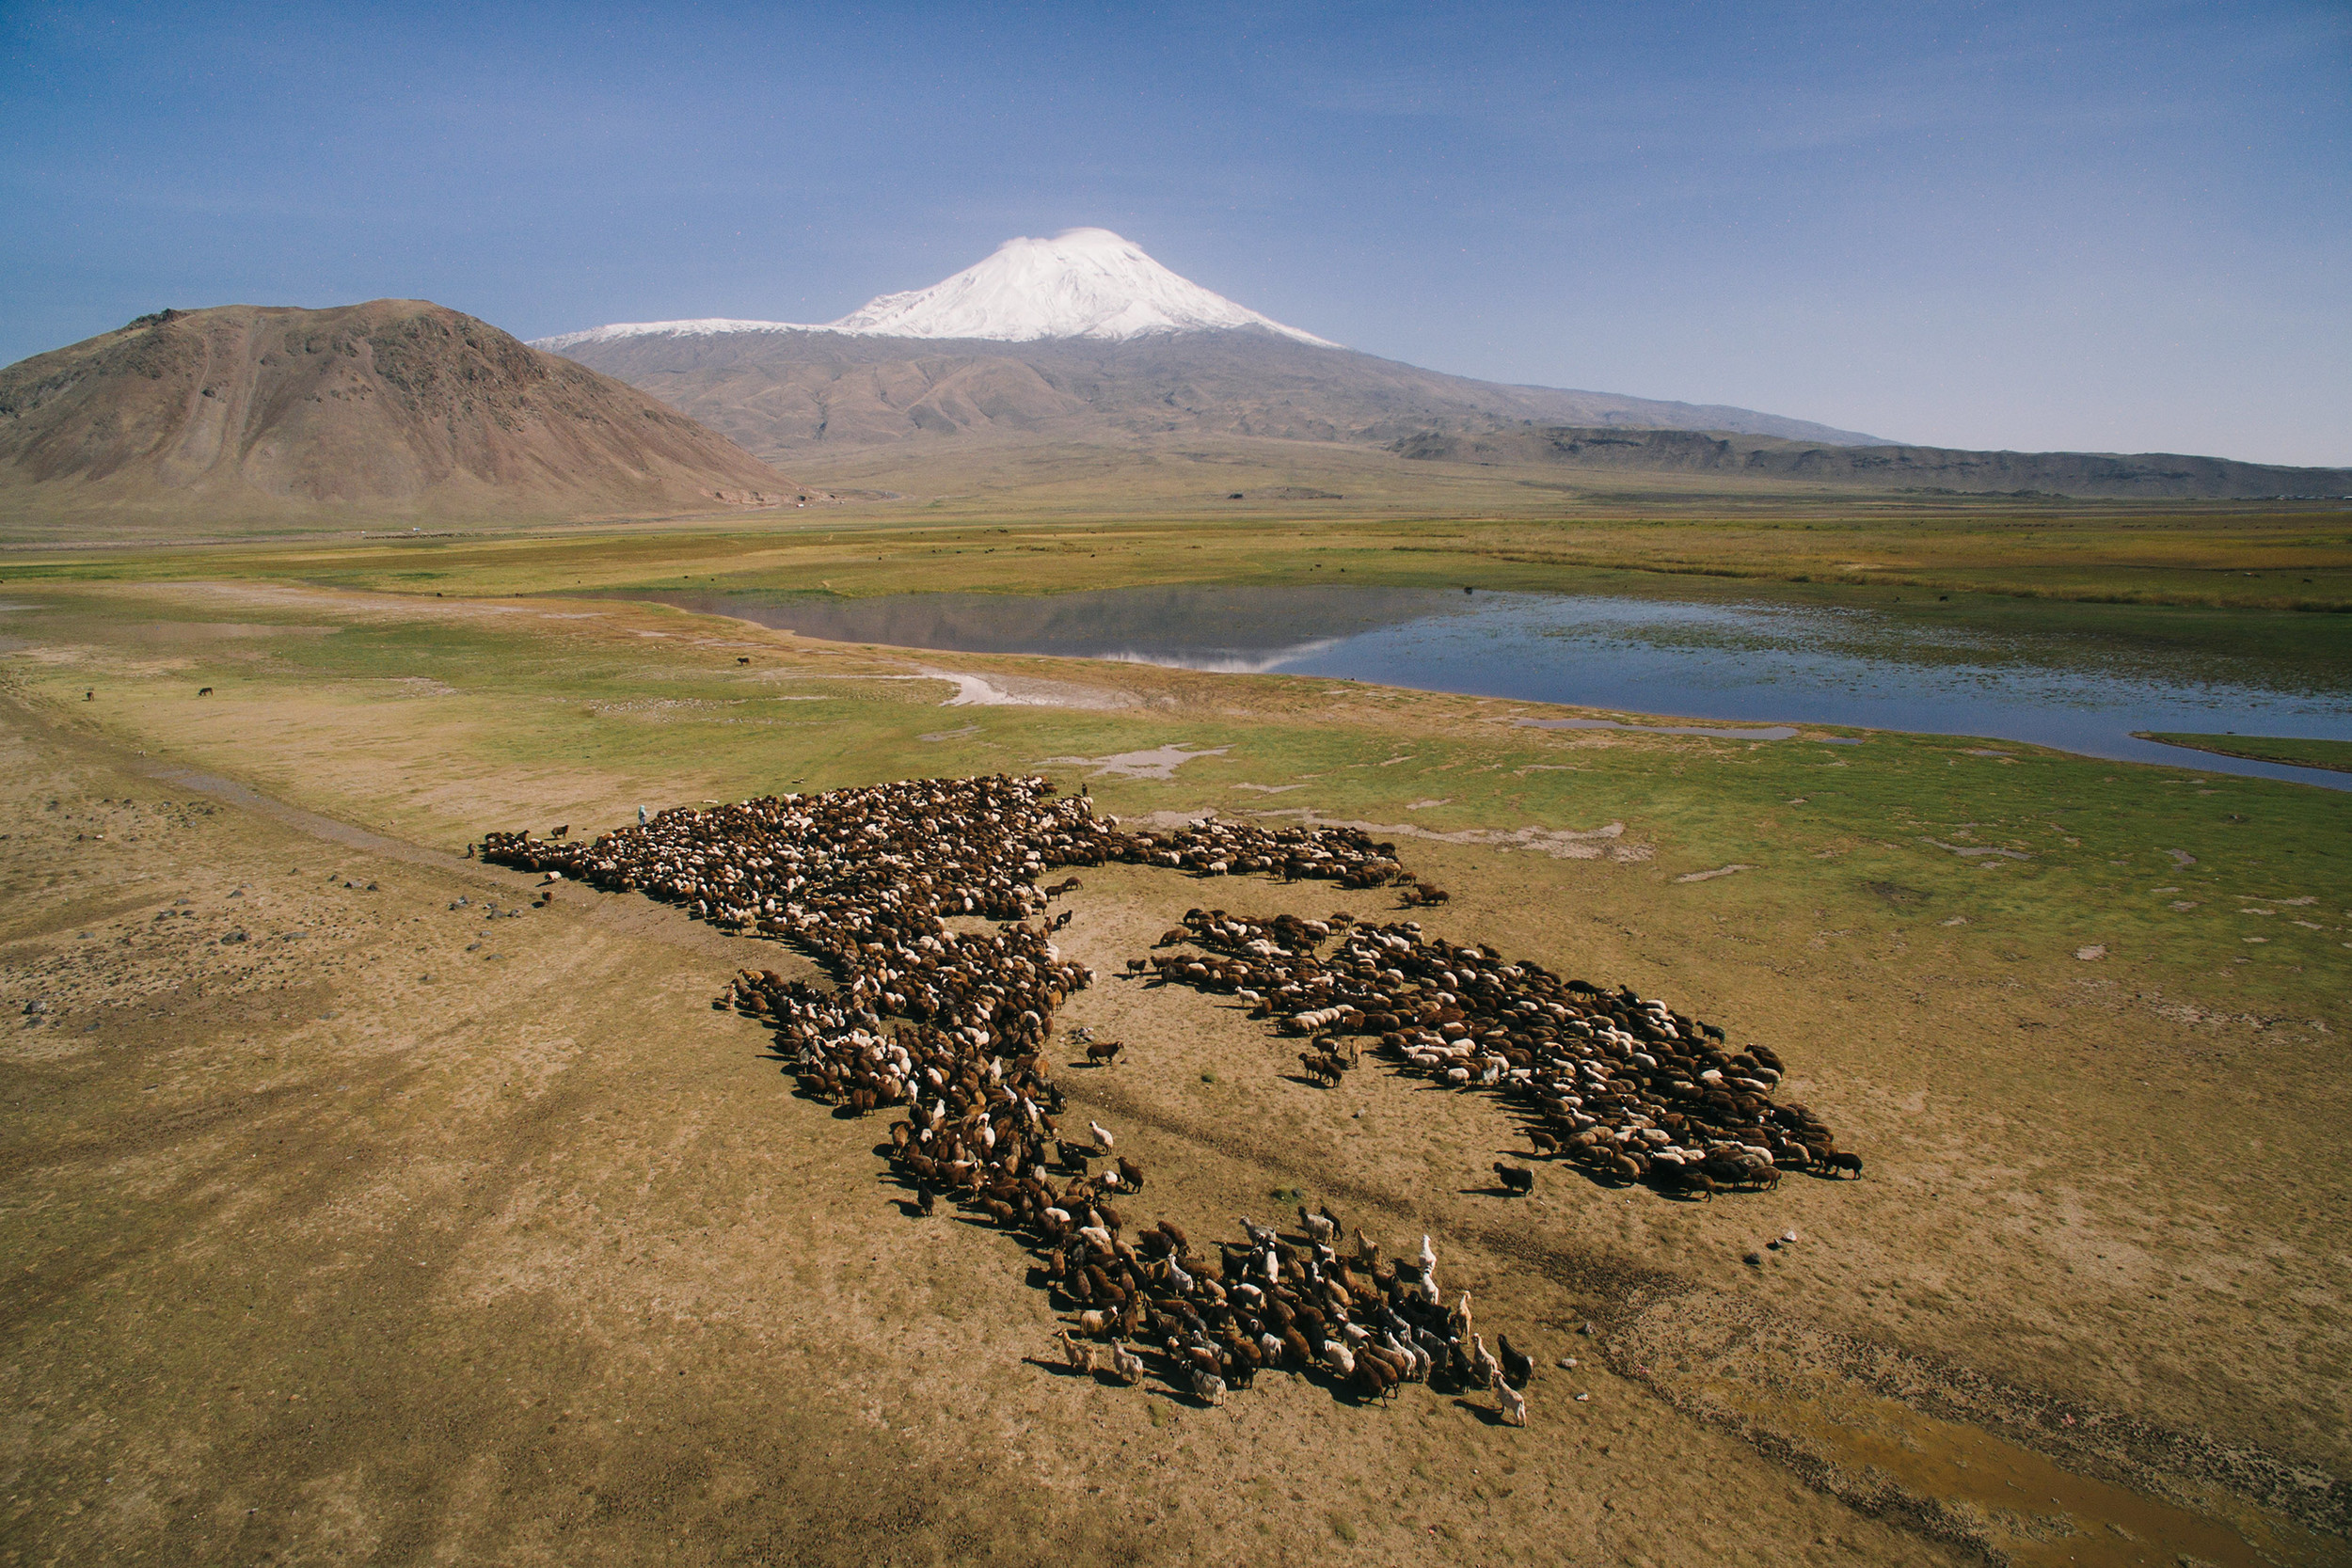 Aerial view of sheep and Mount Ararat in the background